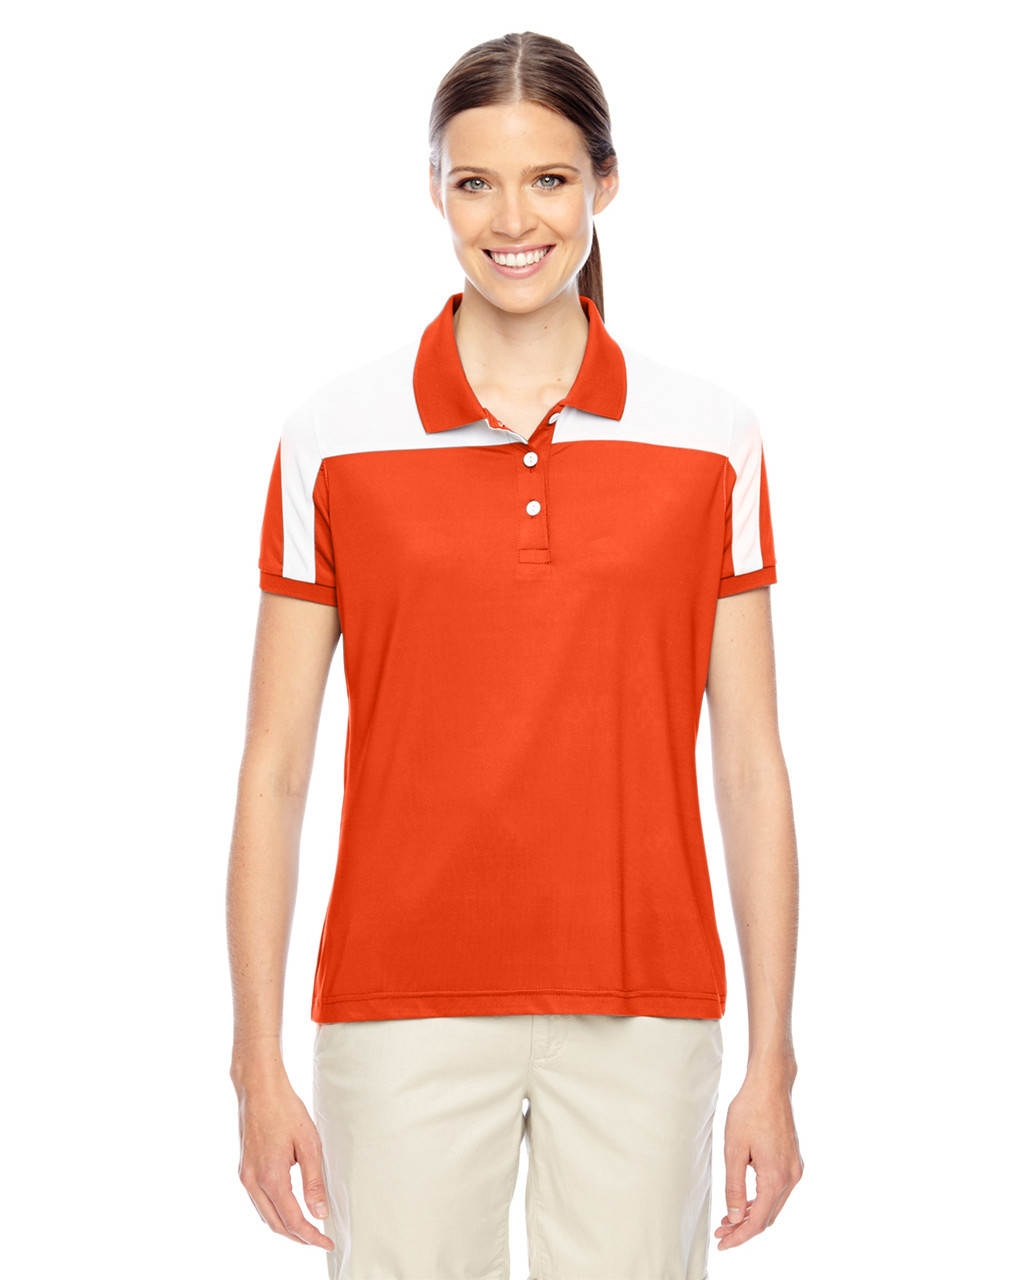 Orange/White - TT22W Team 365 Victor Performance Polo Shirt